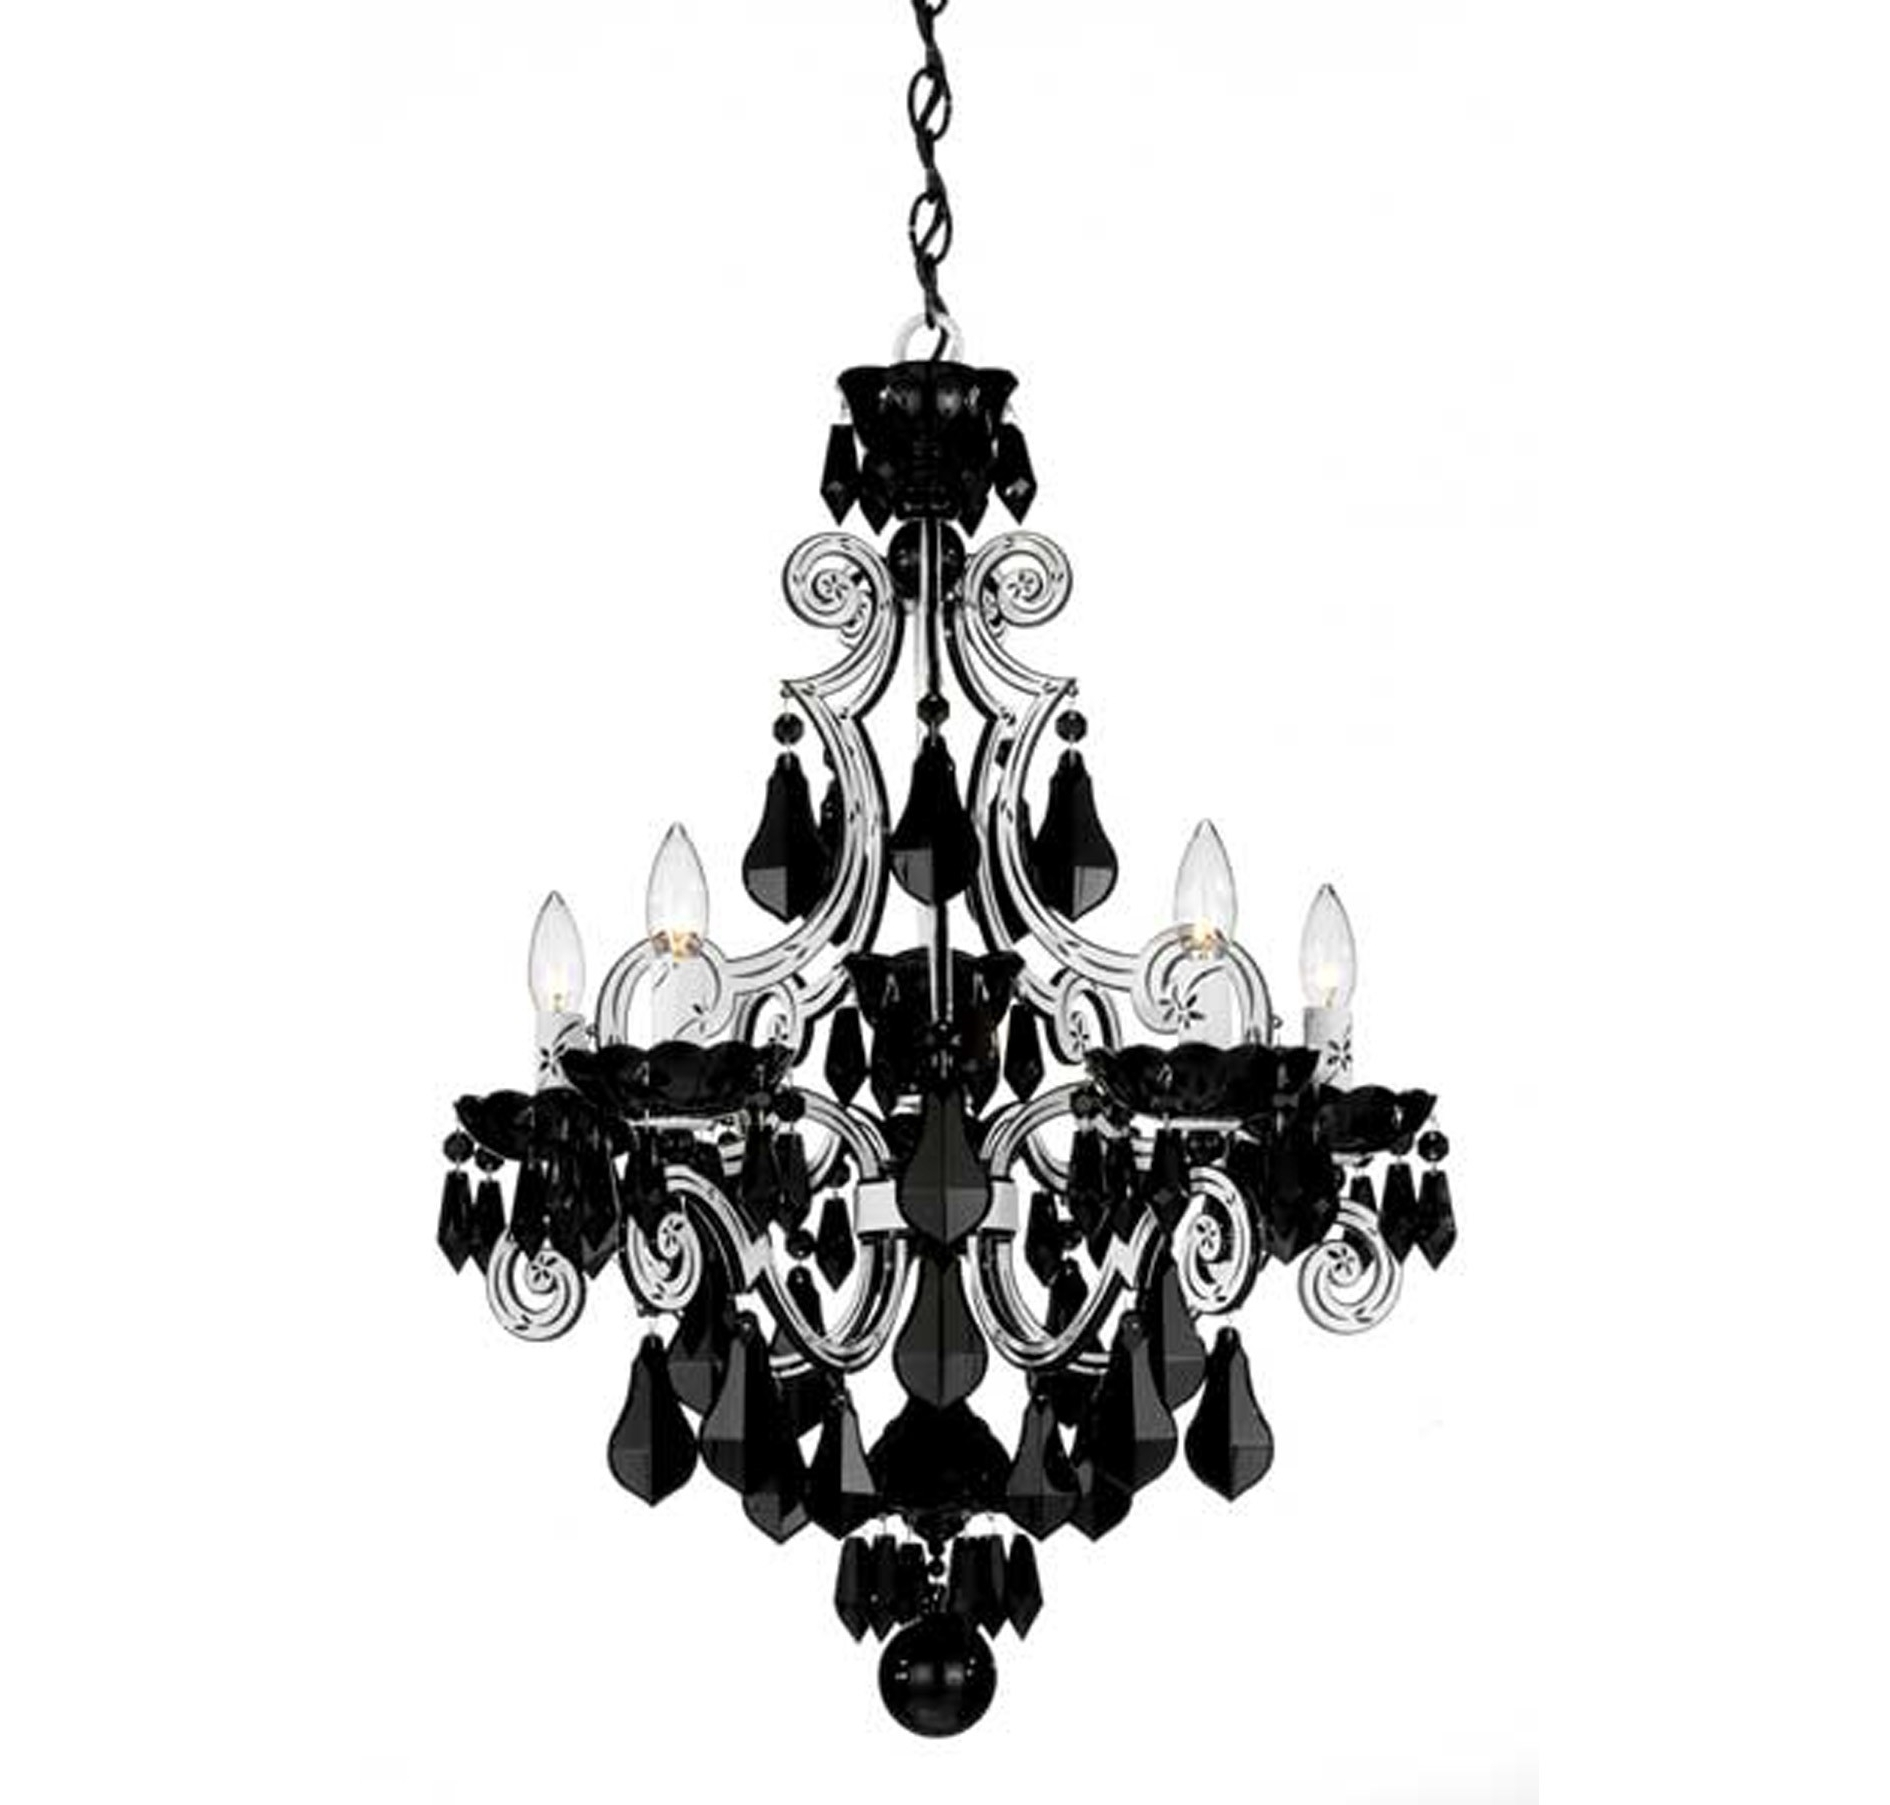 Glass Droplet Chandelier With Regard To Trendy Light : Alluring Clear White Black Glass Crystal Chandelier Metal (View 9 of 15)